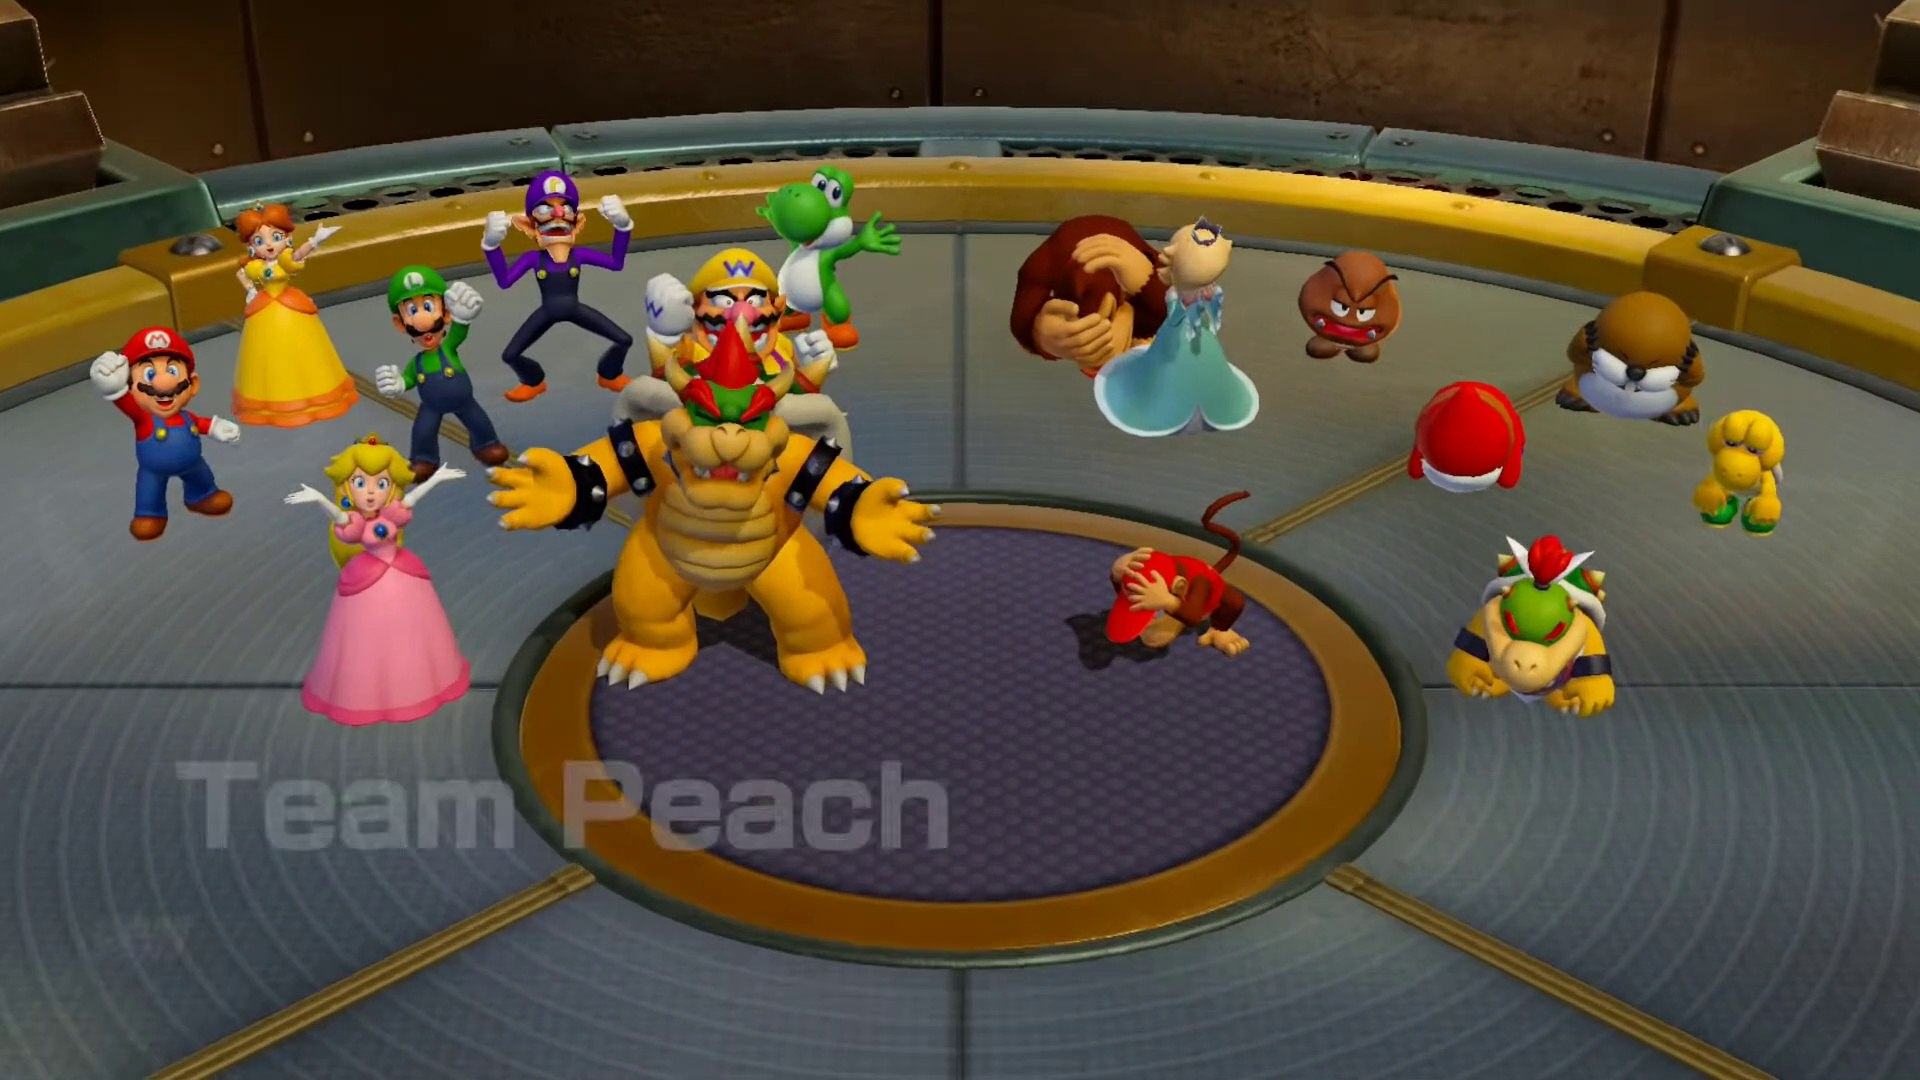 Super Mario Party Free Play - Peach v Bowser v Diddy Kong v Jr. Bowser Gameplay